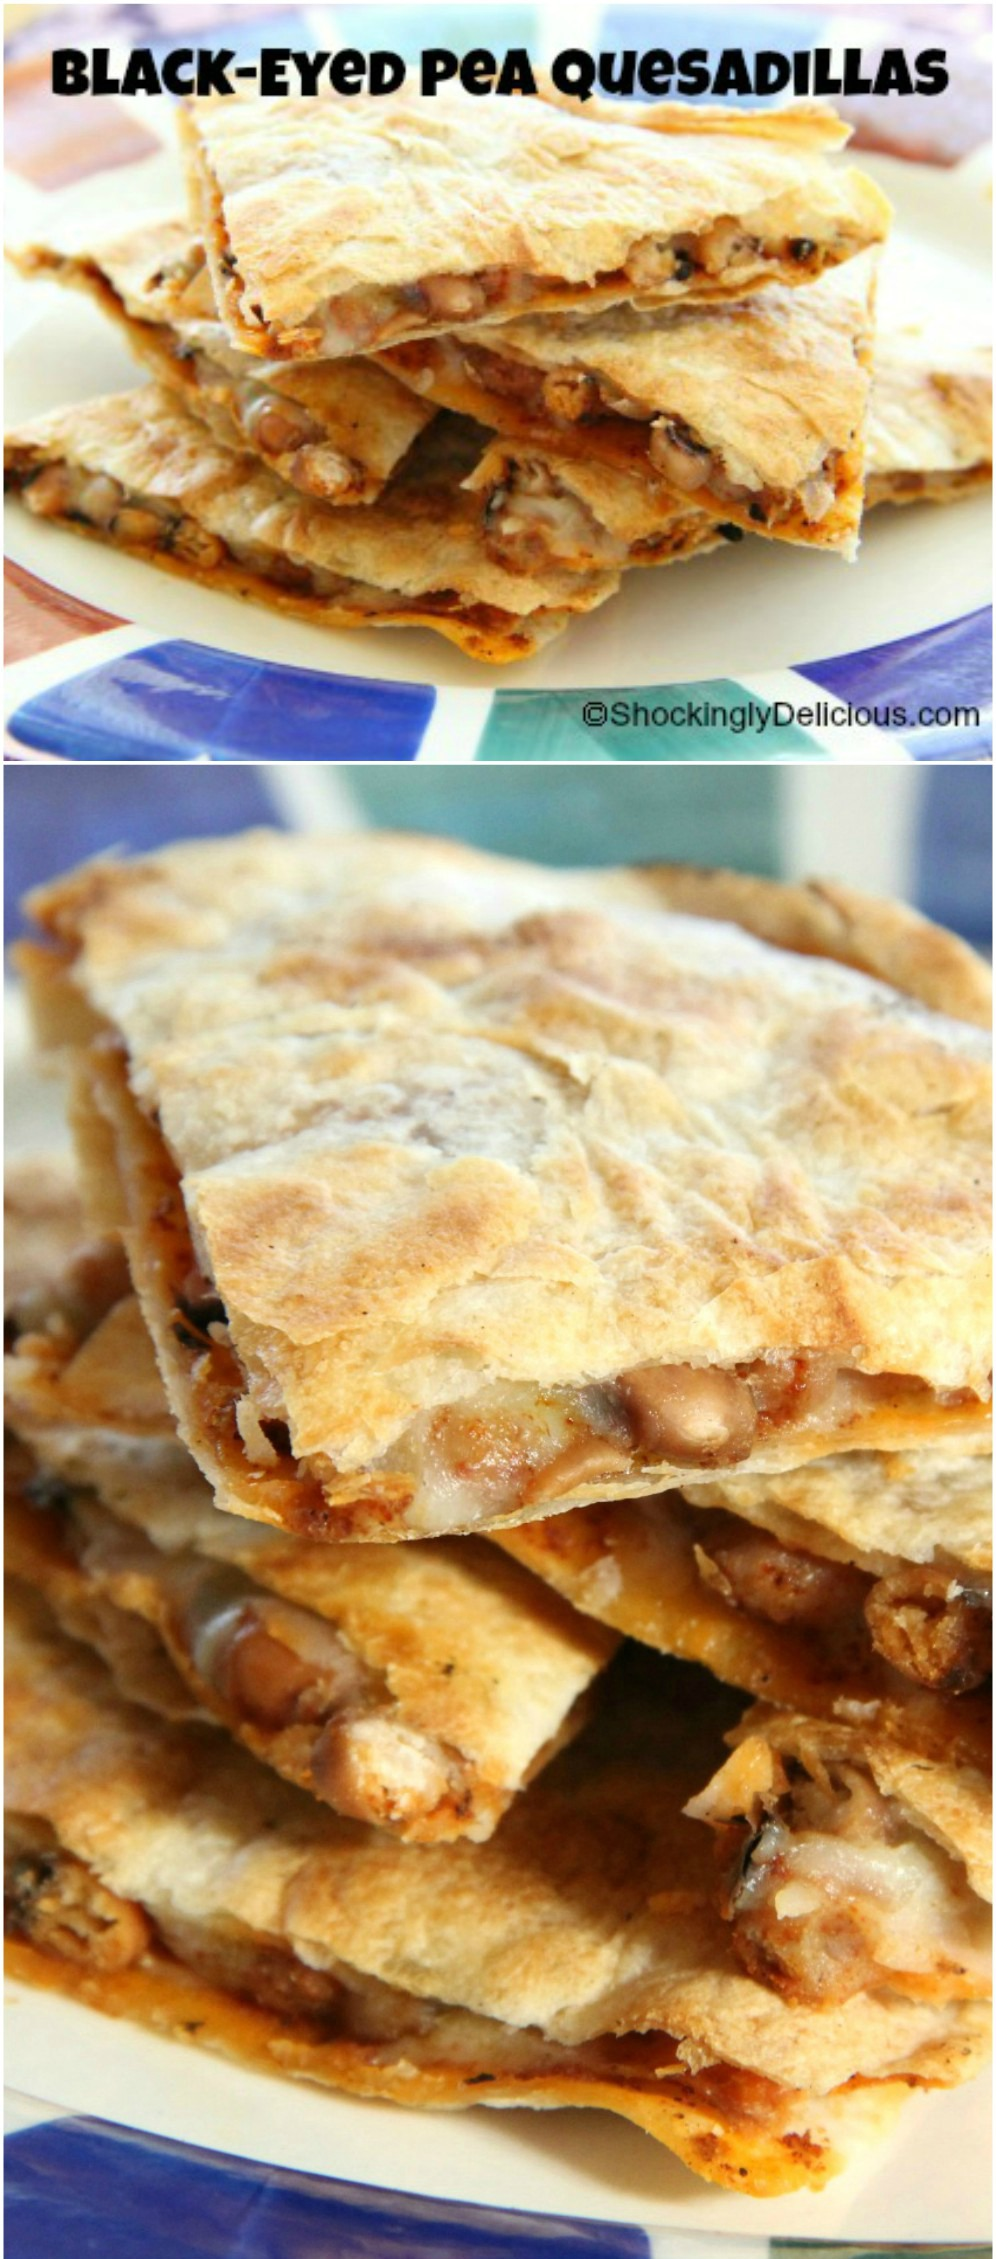 blackeyed-pea-quesadillas-on-shockinglydelicious-com